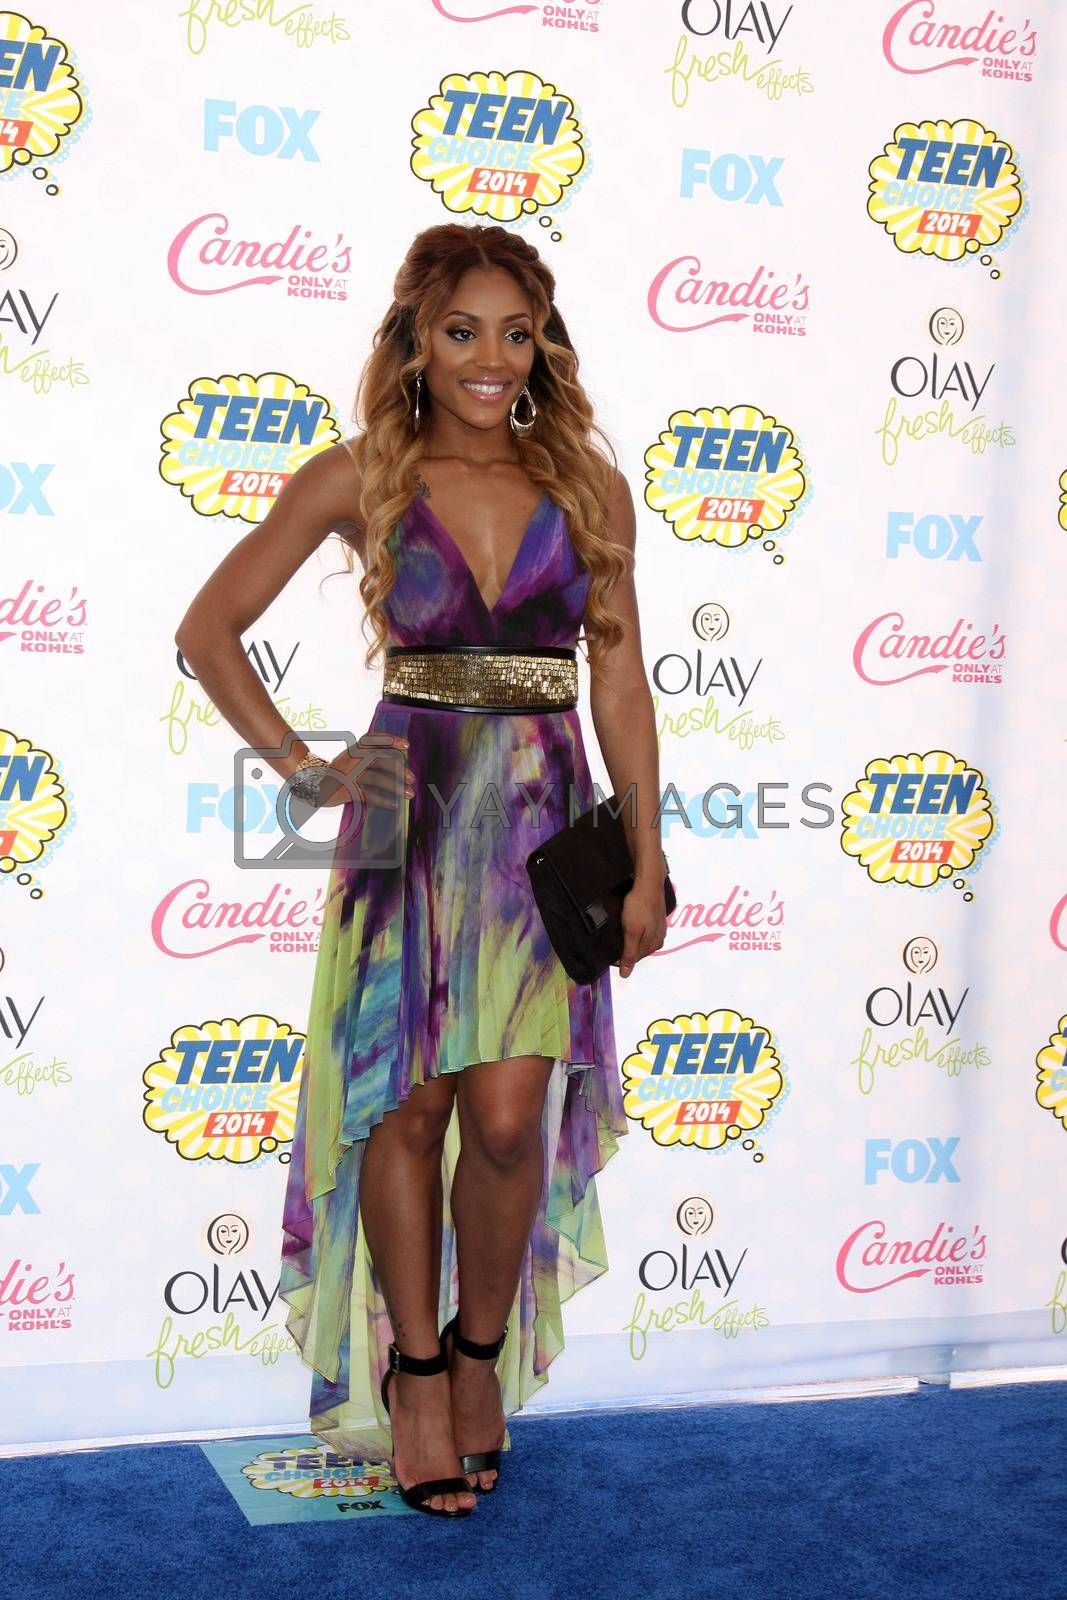 Royalty free image of Missy Lynn at the 2014 Teen Choice Awards Arrivals, Shrine Auditorium, Los Angeles, CA 08-10-14/ImageCollect by ImageCollect